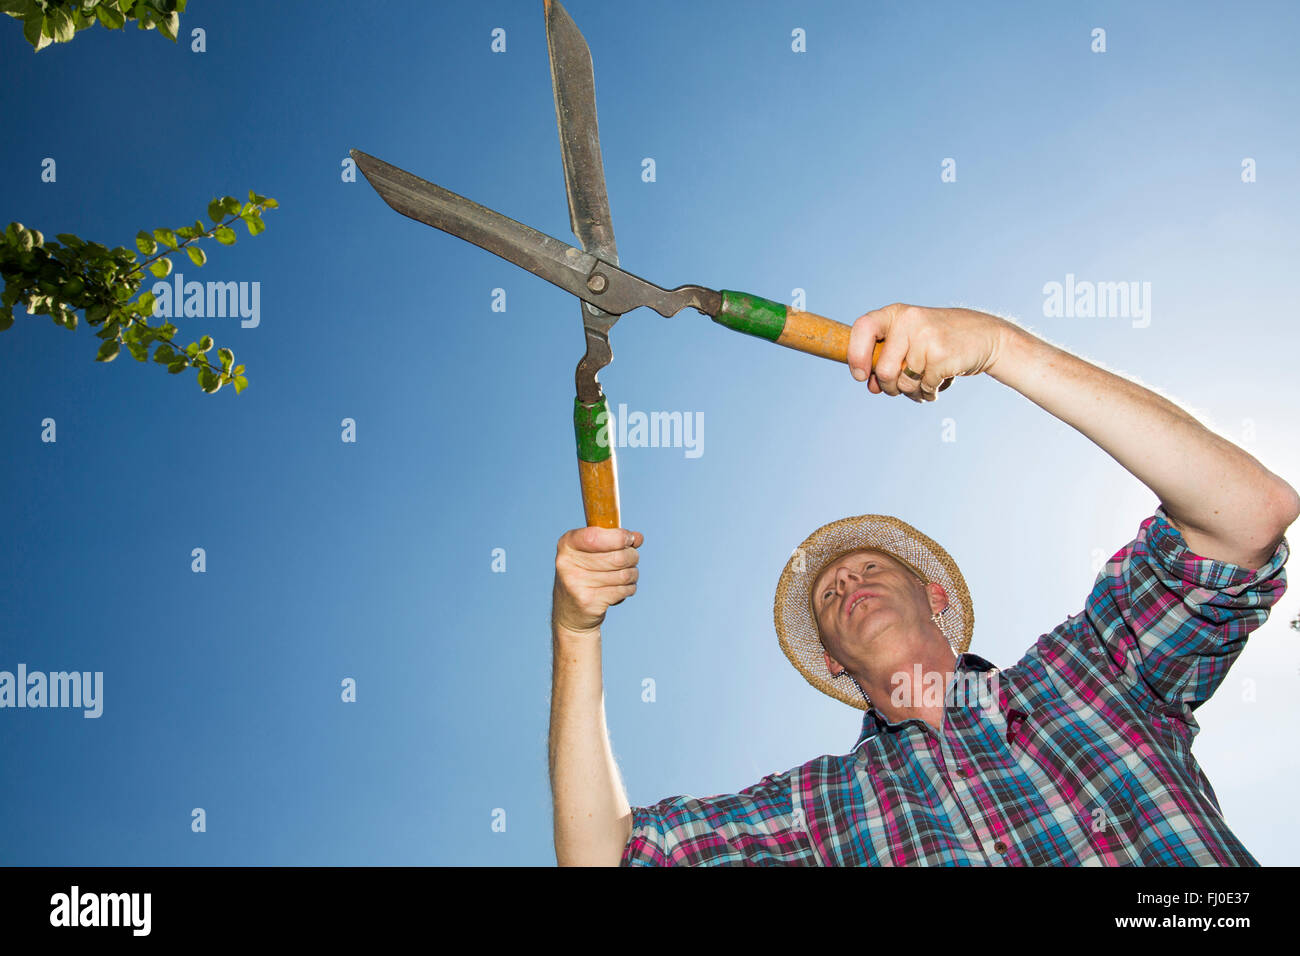 Allotment gardener with hedge trimmer in front of blue sky Stock Photo